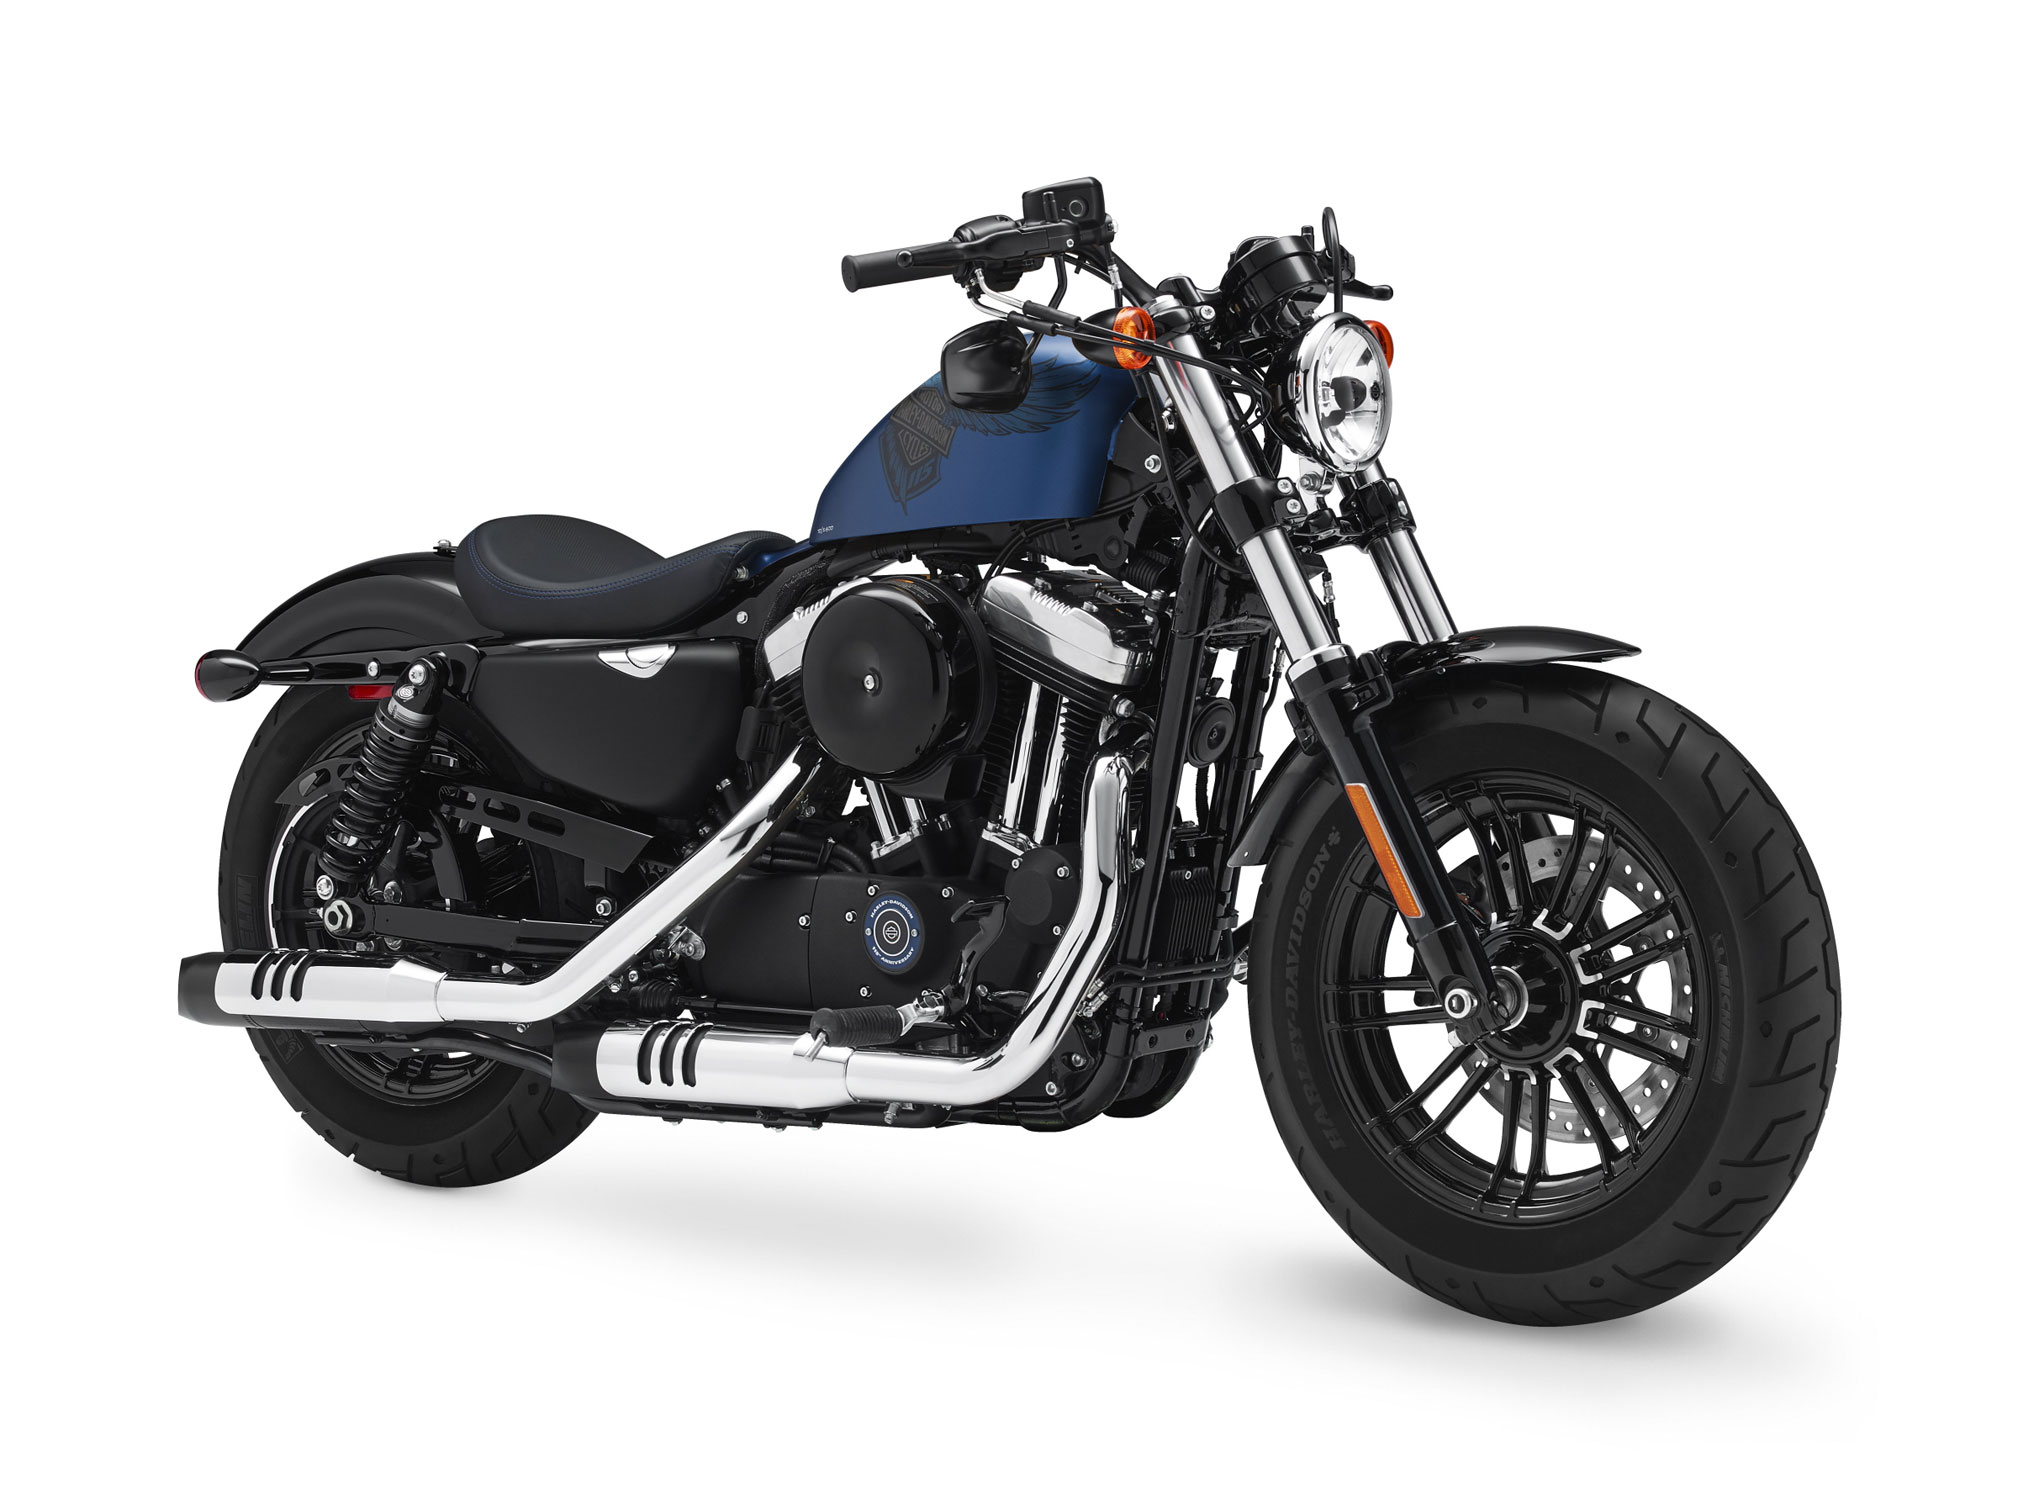 2018 harley davidson forty eight 115th anniversary review total motorcycle. Black Bedroom Furniture Sets. Home Design Ideas